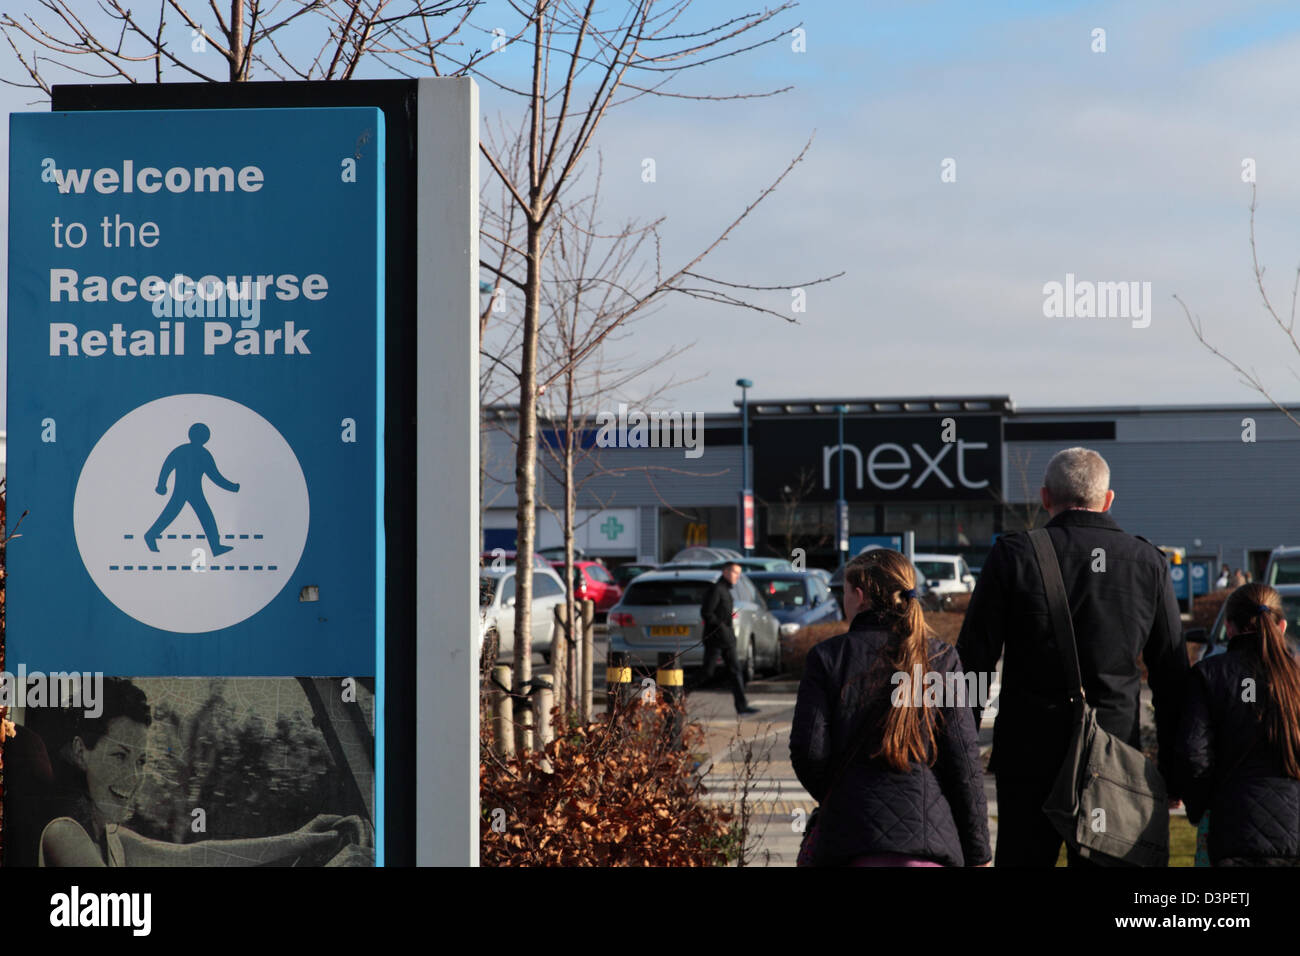 Racecourse Retail Park, Aintree, Liverpool Stock Photo